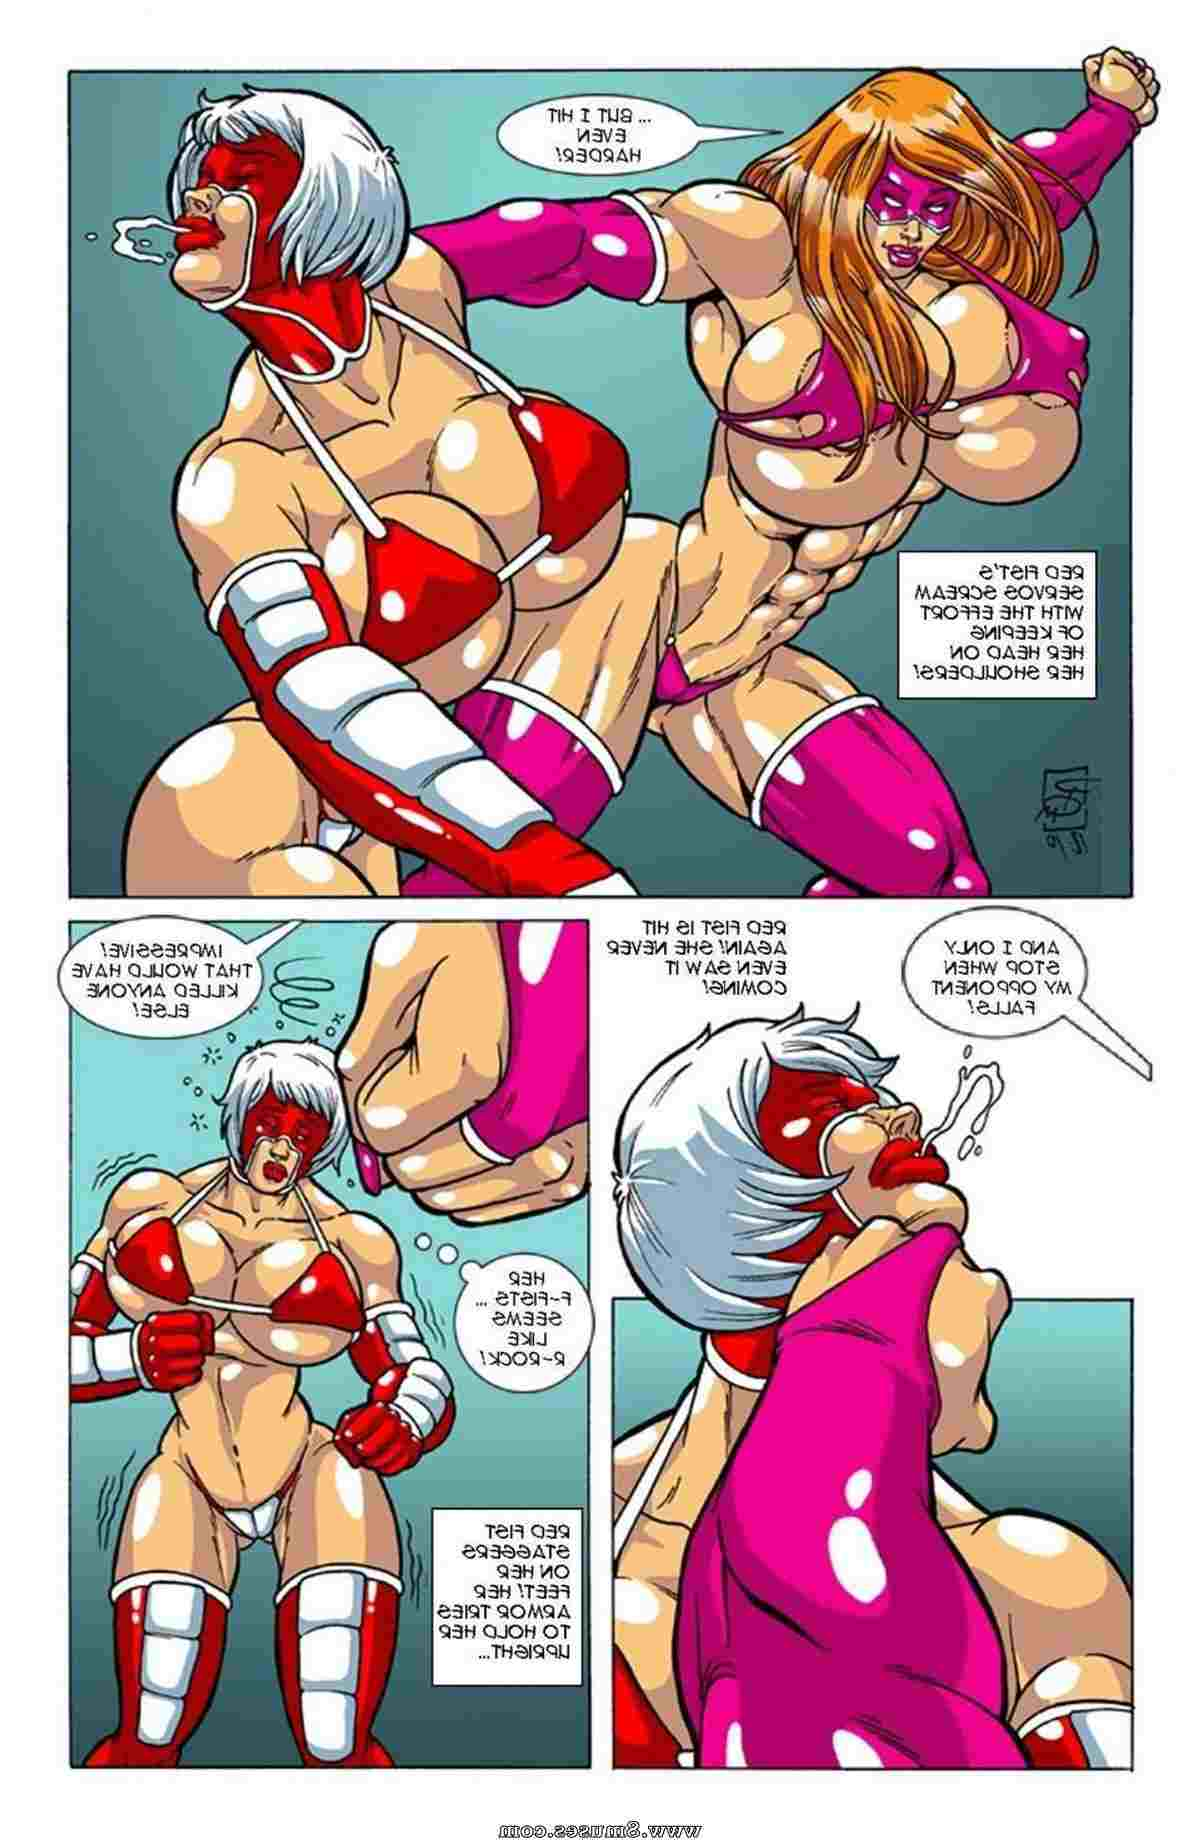 Central-Comics/Monster-Babe-Central/Omega-Fighters Omega_Fighters__8muses_-_Sex_and_Porn_Comics_28.jpg